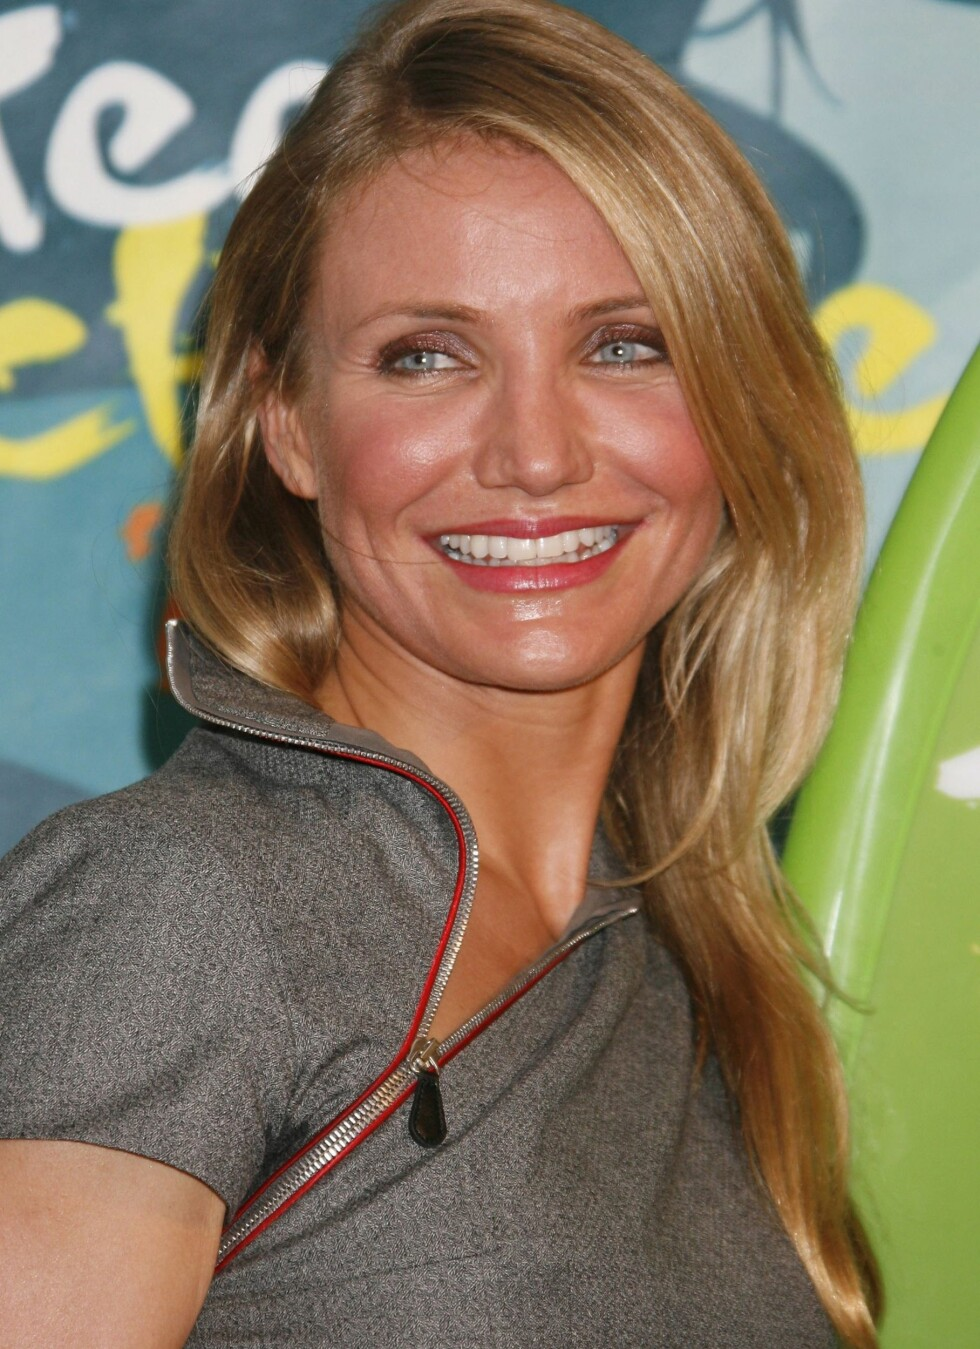 5. Cameron DiazSkuespiller Cameron Diaz brede smil holdt til en femteplass i magasinets kåring.  Foto: All Over Press